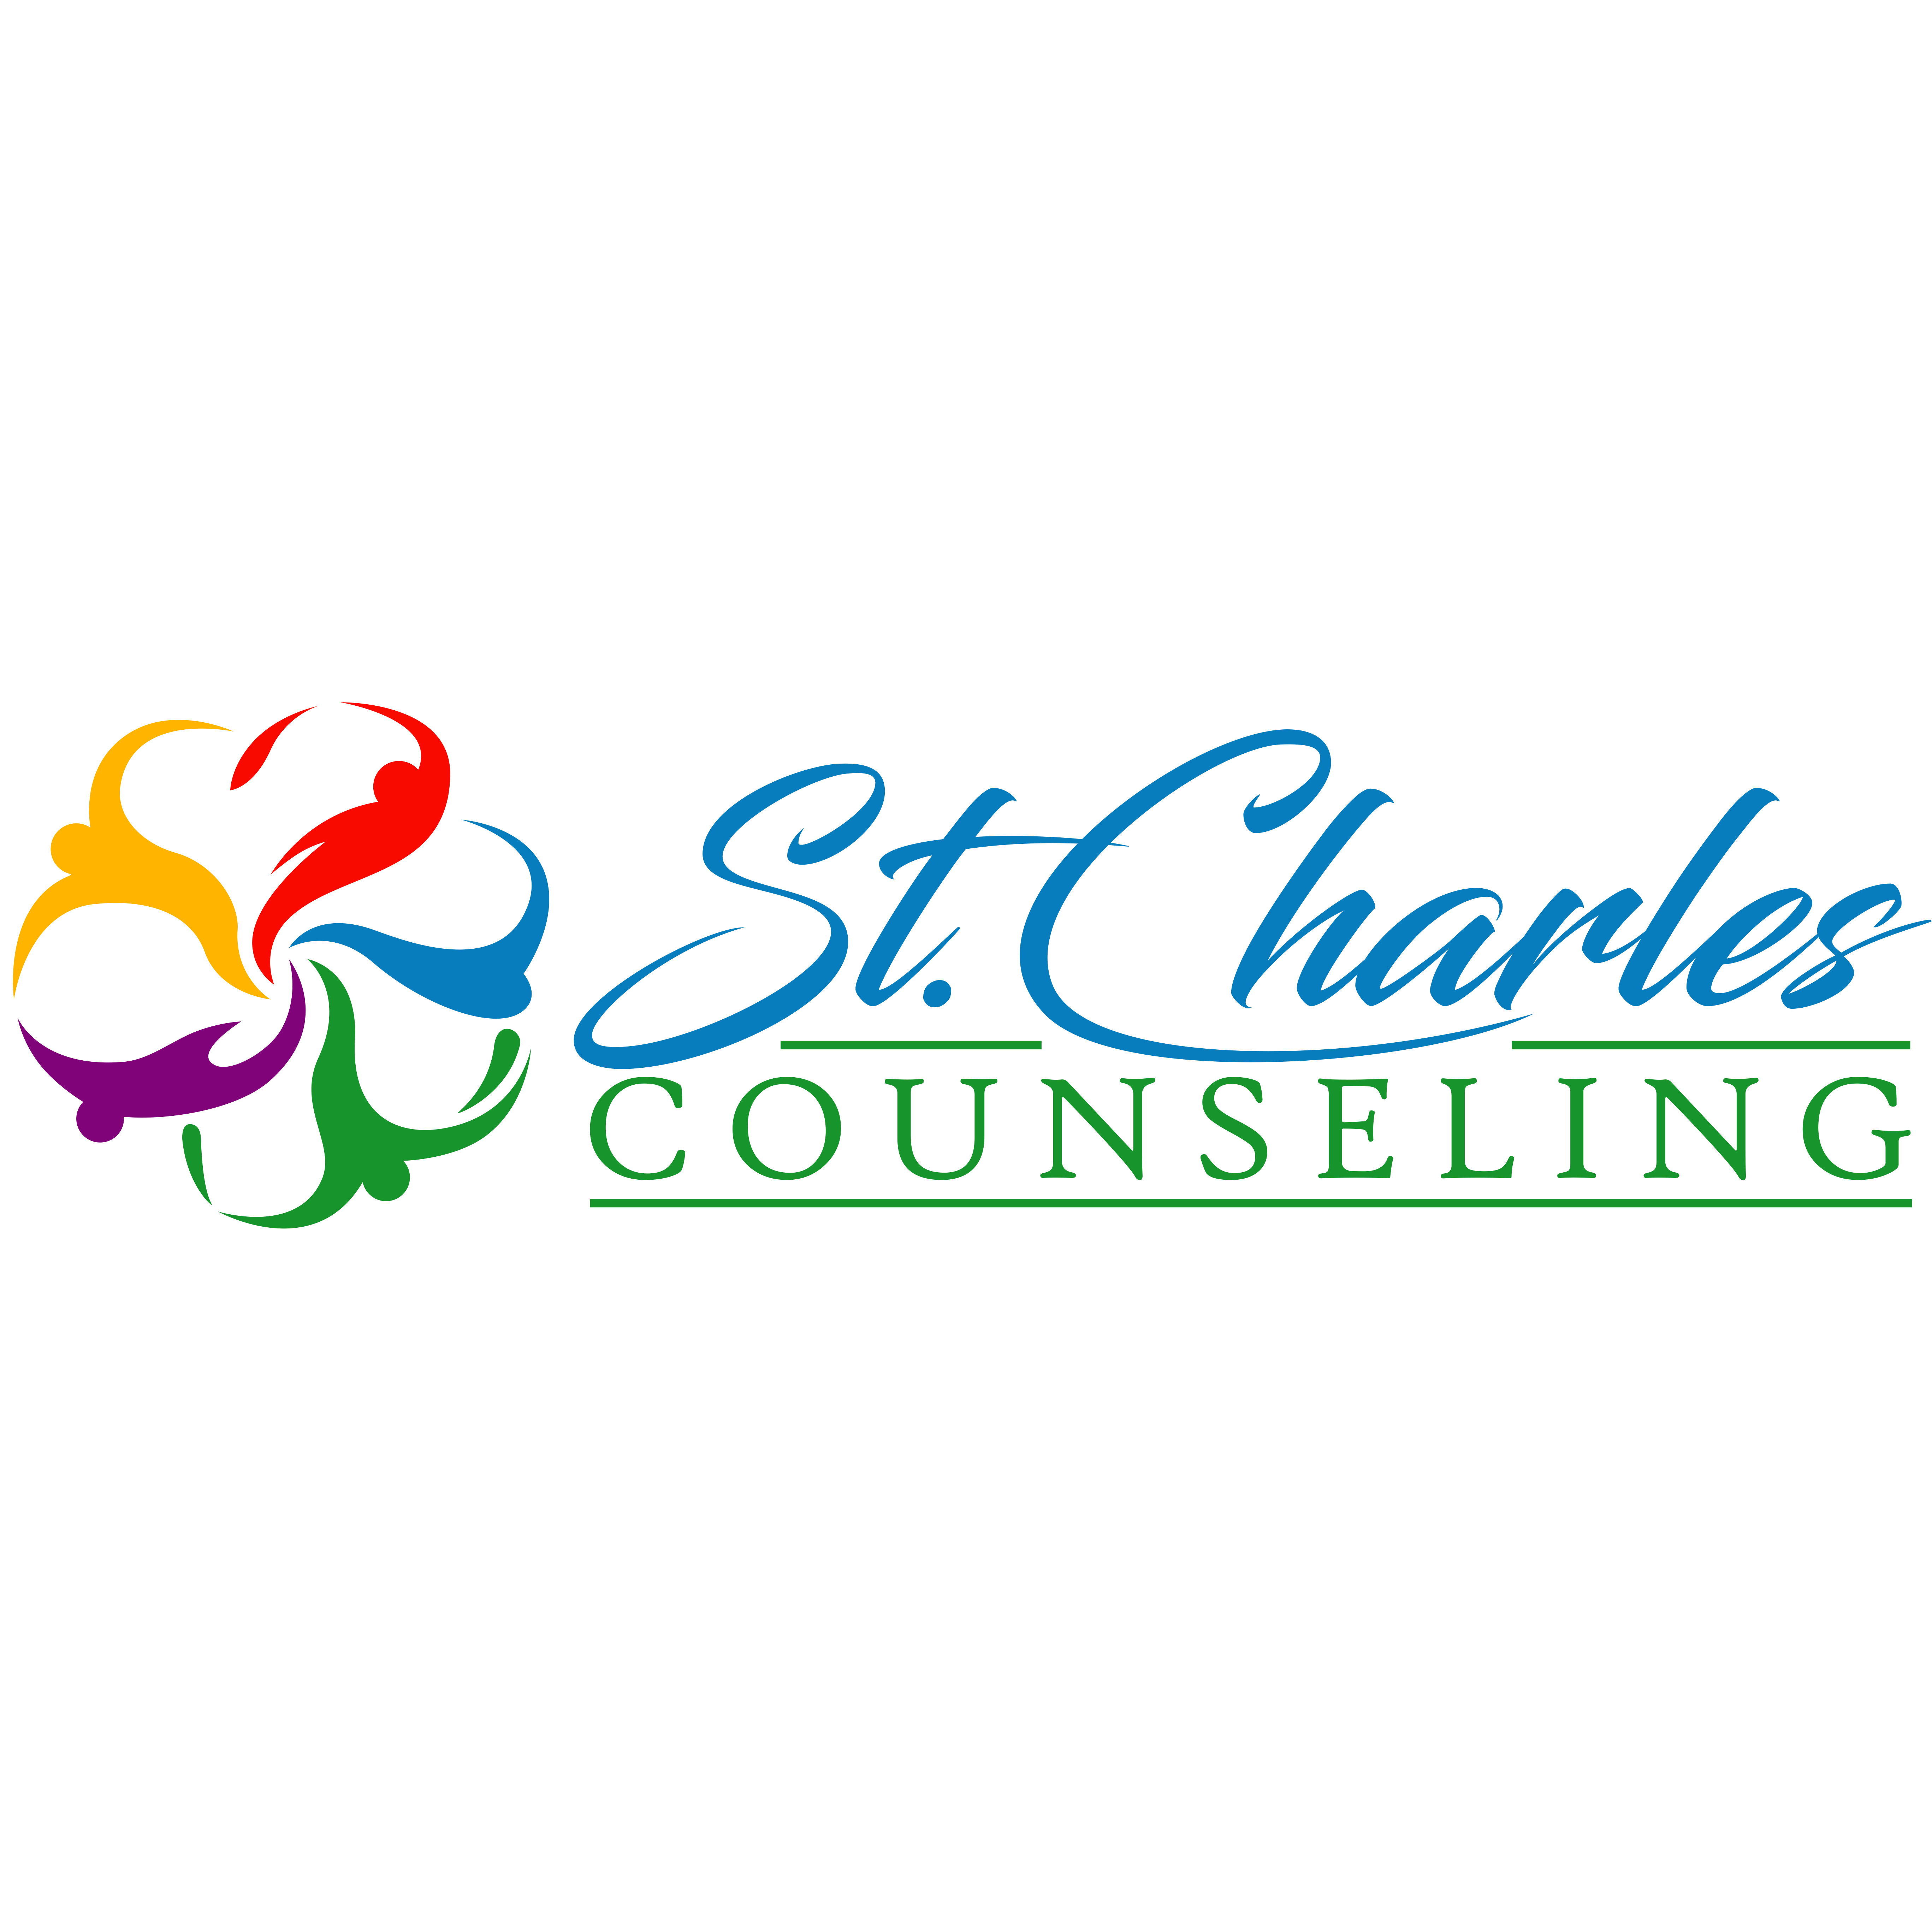 St. Charles Counseling in St. Charles Illinois